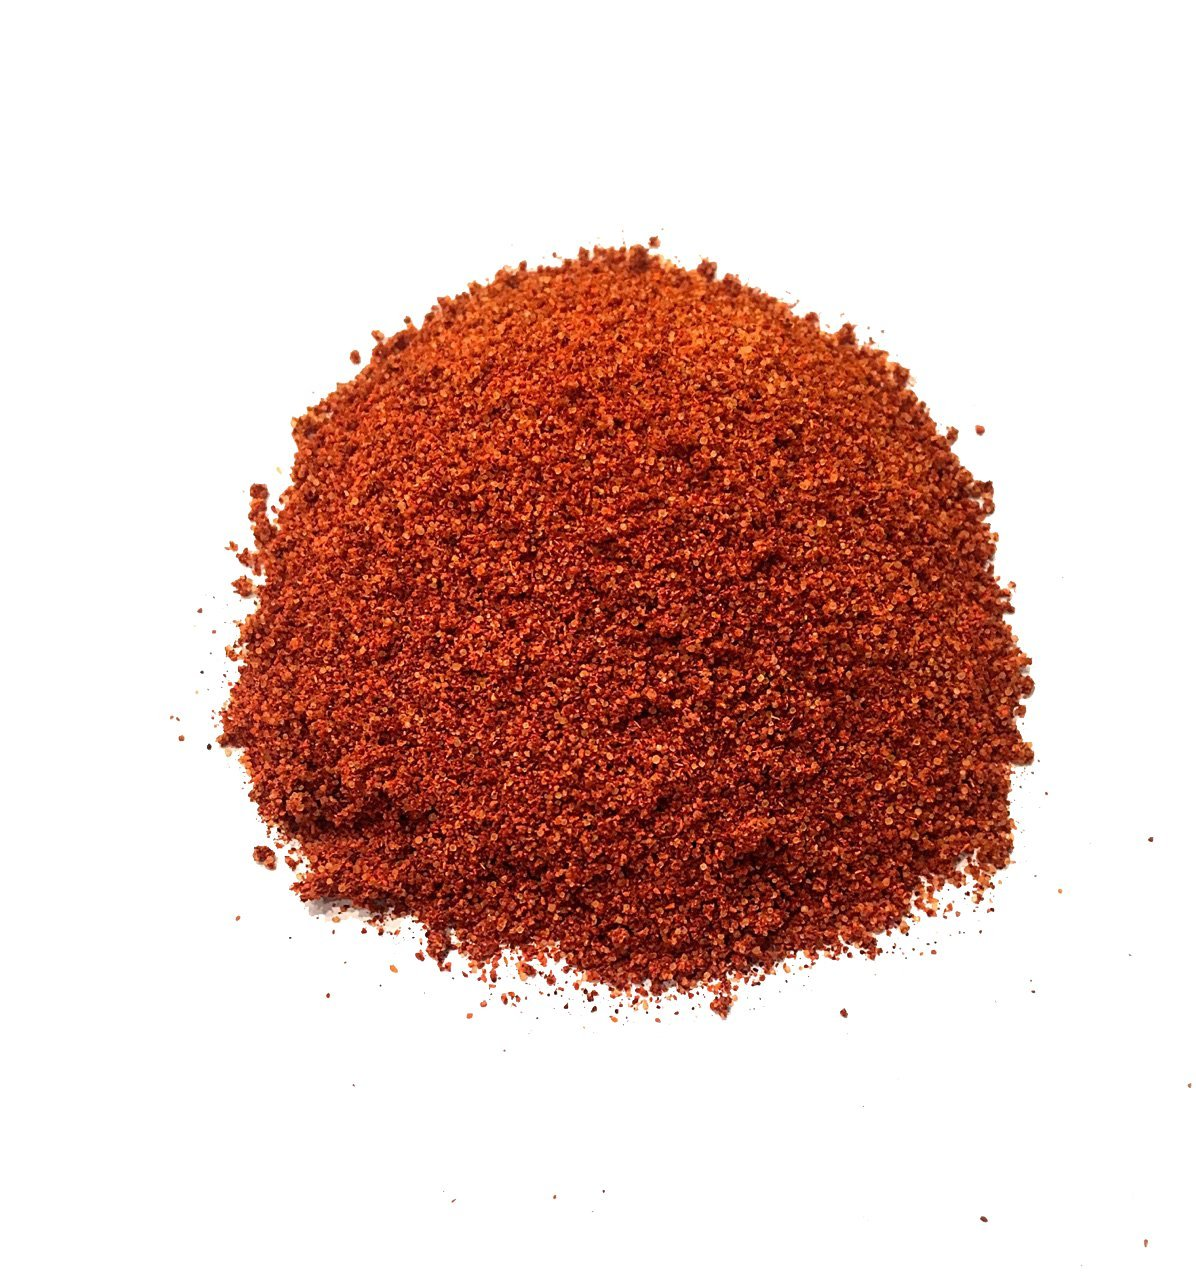 Chipotle, Smoked Paprika, Ancho Powder 3 Pack Mexican Cooking Bundle - Great For Tacos, Rubs, Pork, Mole, Fajitas, Menudo, Chorizo by Ole Mission by Ole Mission (Image #4)